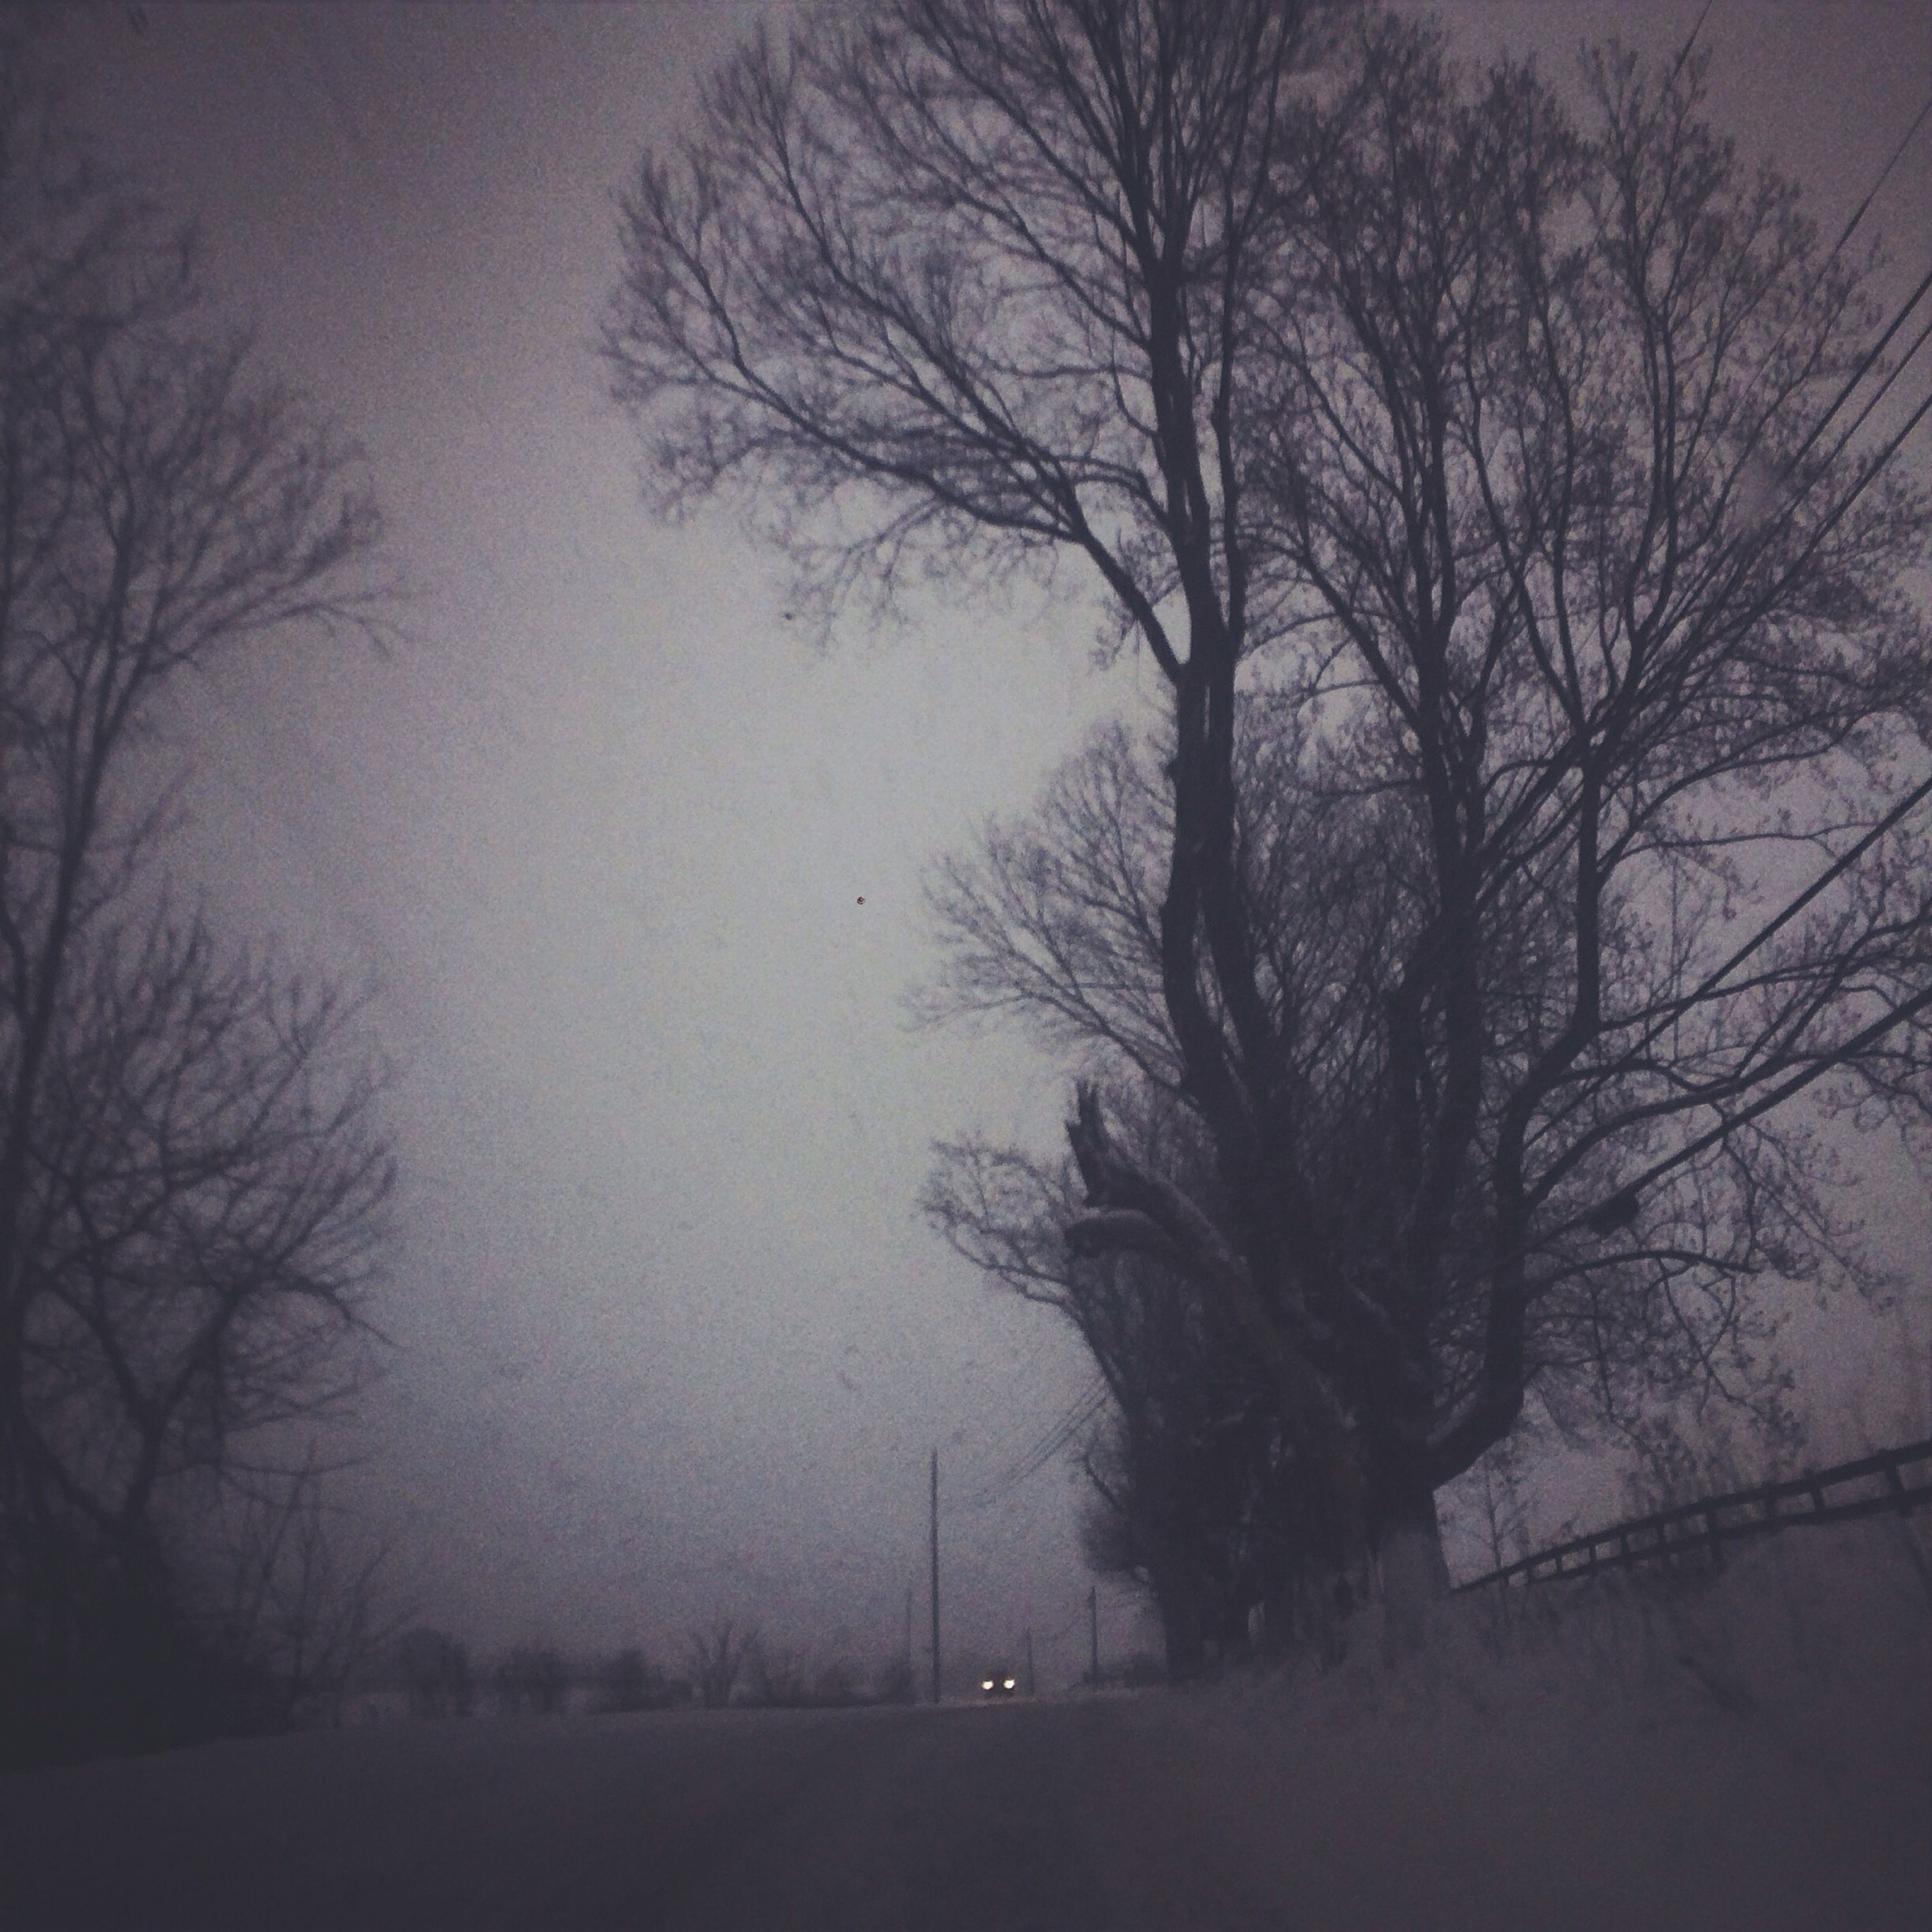 bare tree, tree, tranquility, branch, silhouette, tranquil scene, sky, nature, scenics, beauty in nature, dusk, landscape, tree trunk, field, outdoors, no people, weather, non-urban scene, fog, sunset